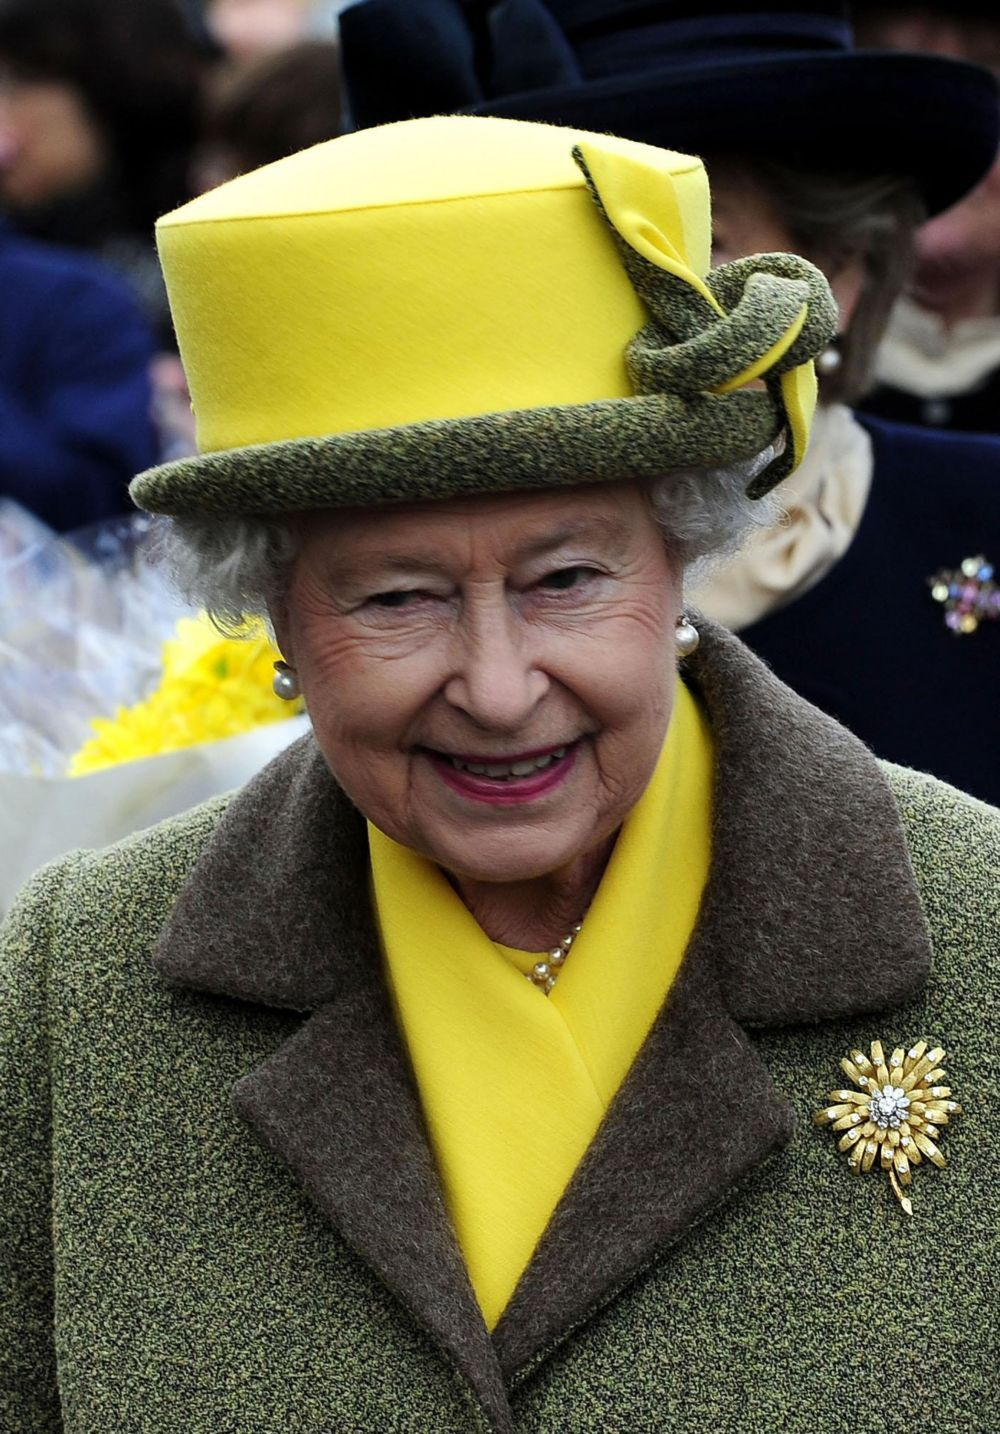 Garderobe Queen Elizabeth Queen Elizabeth Wearing Her Frosted Sunflower Brooch Queen